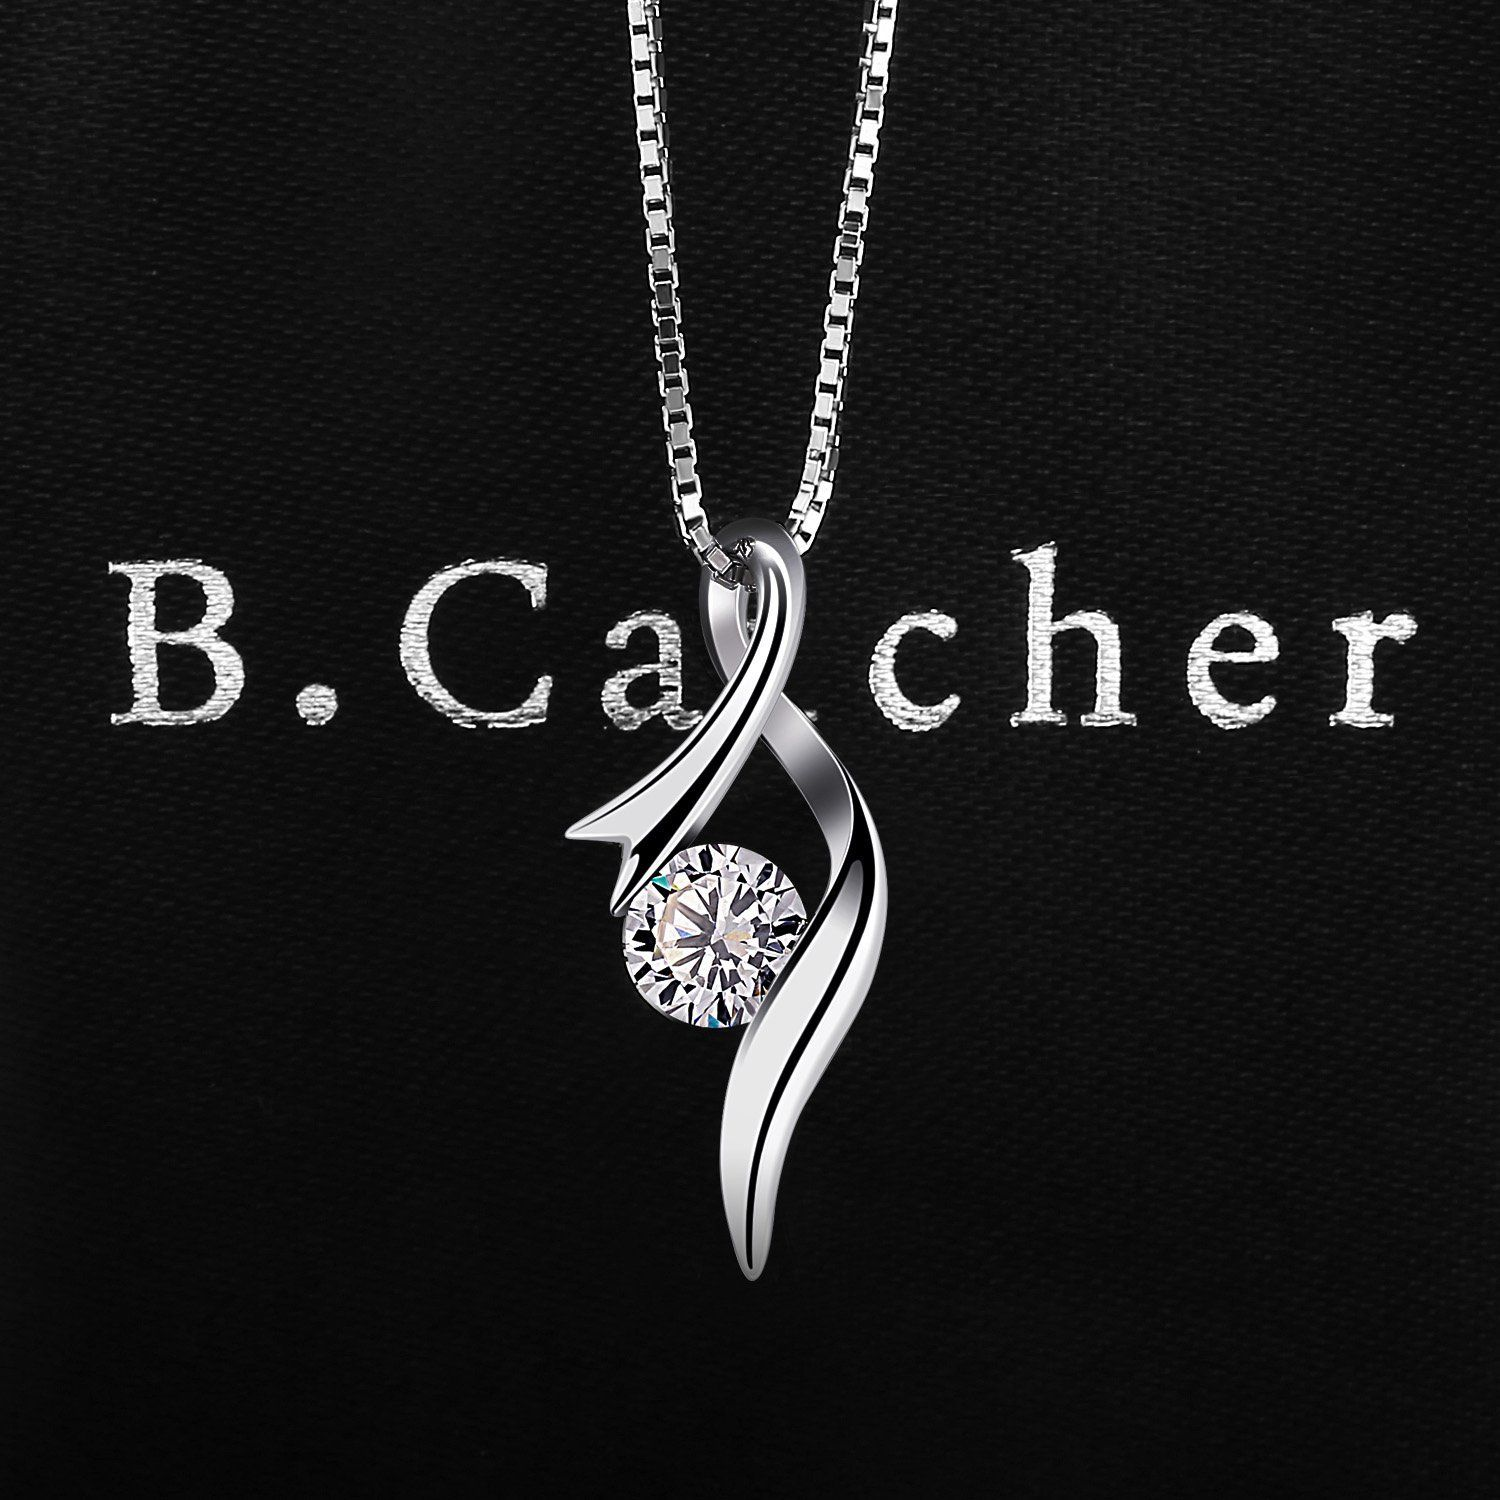 fe90ef181 B.Catcher Necklaces Womens Pendant 925 Silver Cubic Zirconia Christmas Gift  with Gift Box -